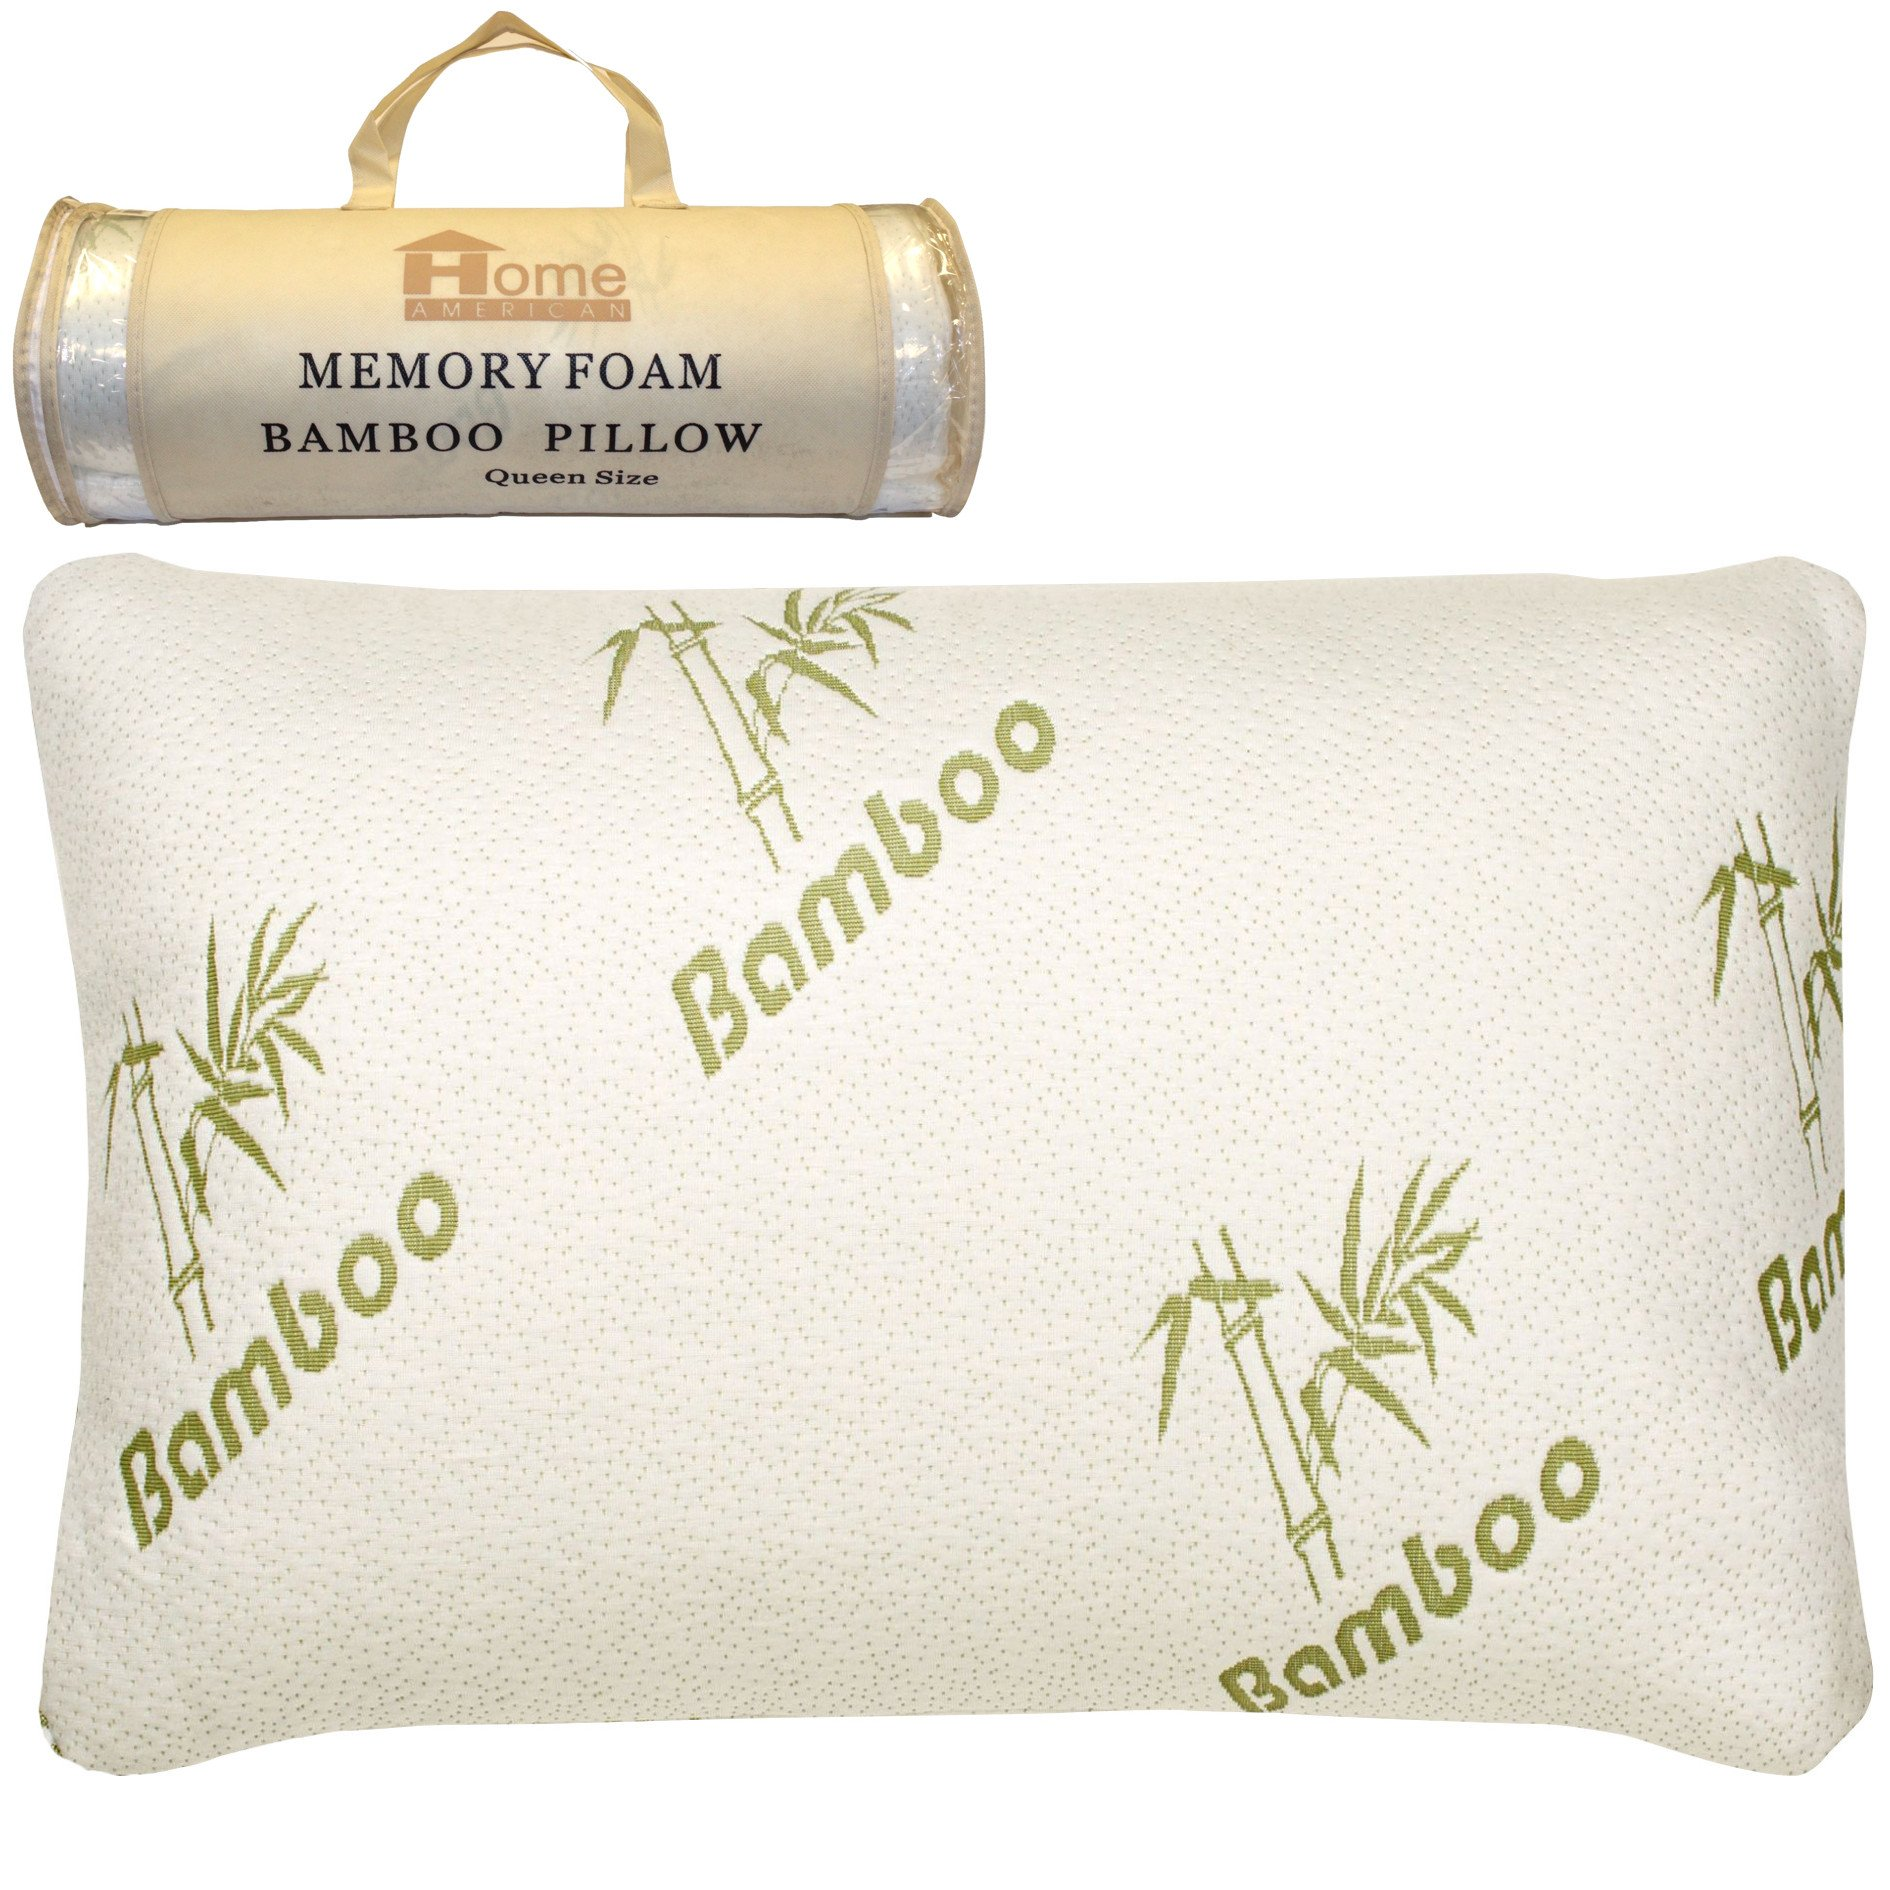 watch comfort pillows king youtube hotel bamboo pillow comforter